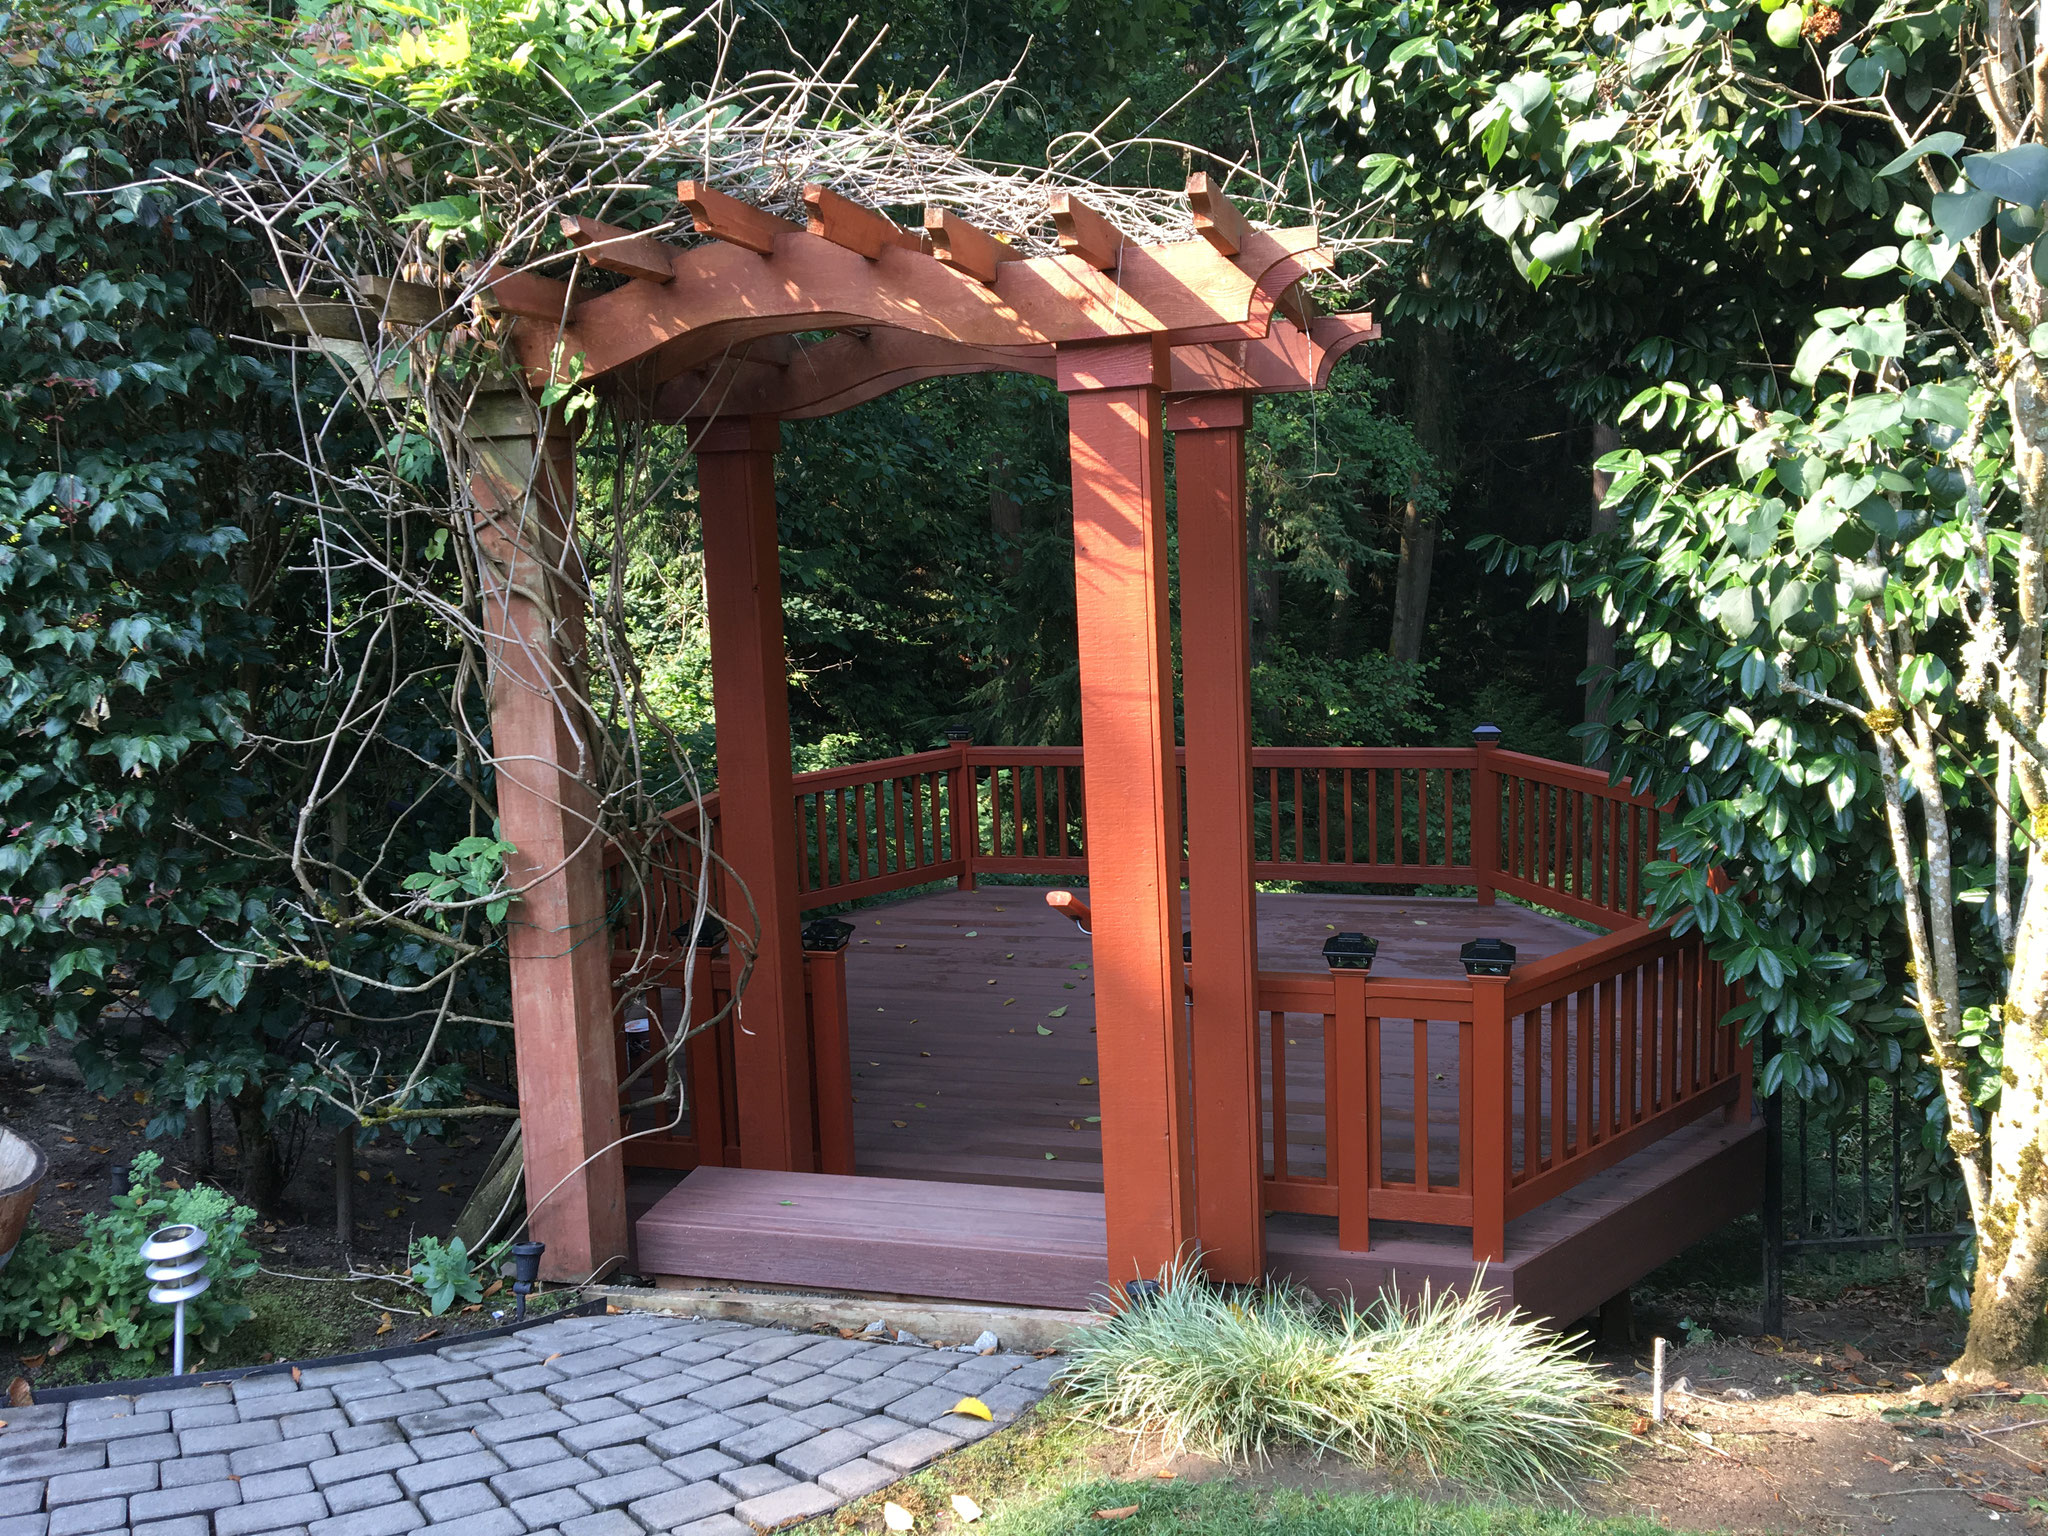 Finished new deck and arbor - spectacular!